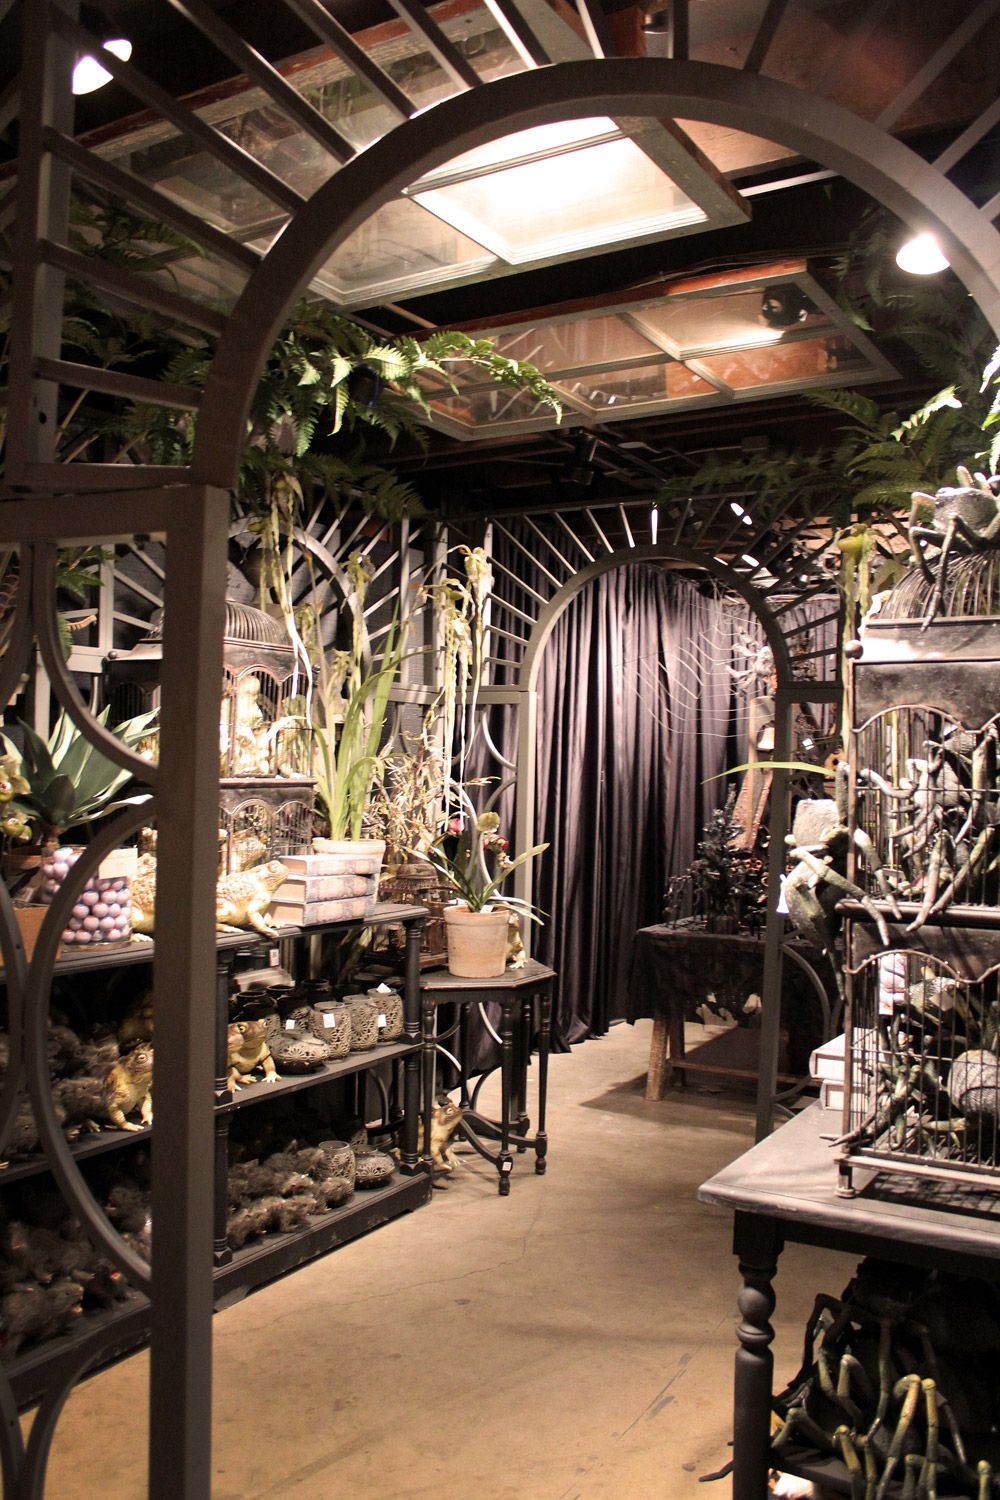 Roger's Gardens Halloween displaygoth up your greenhouse